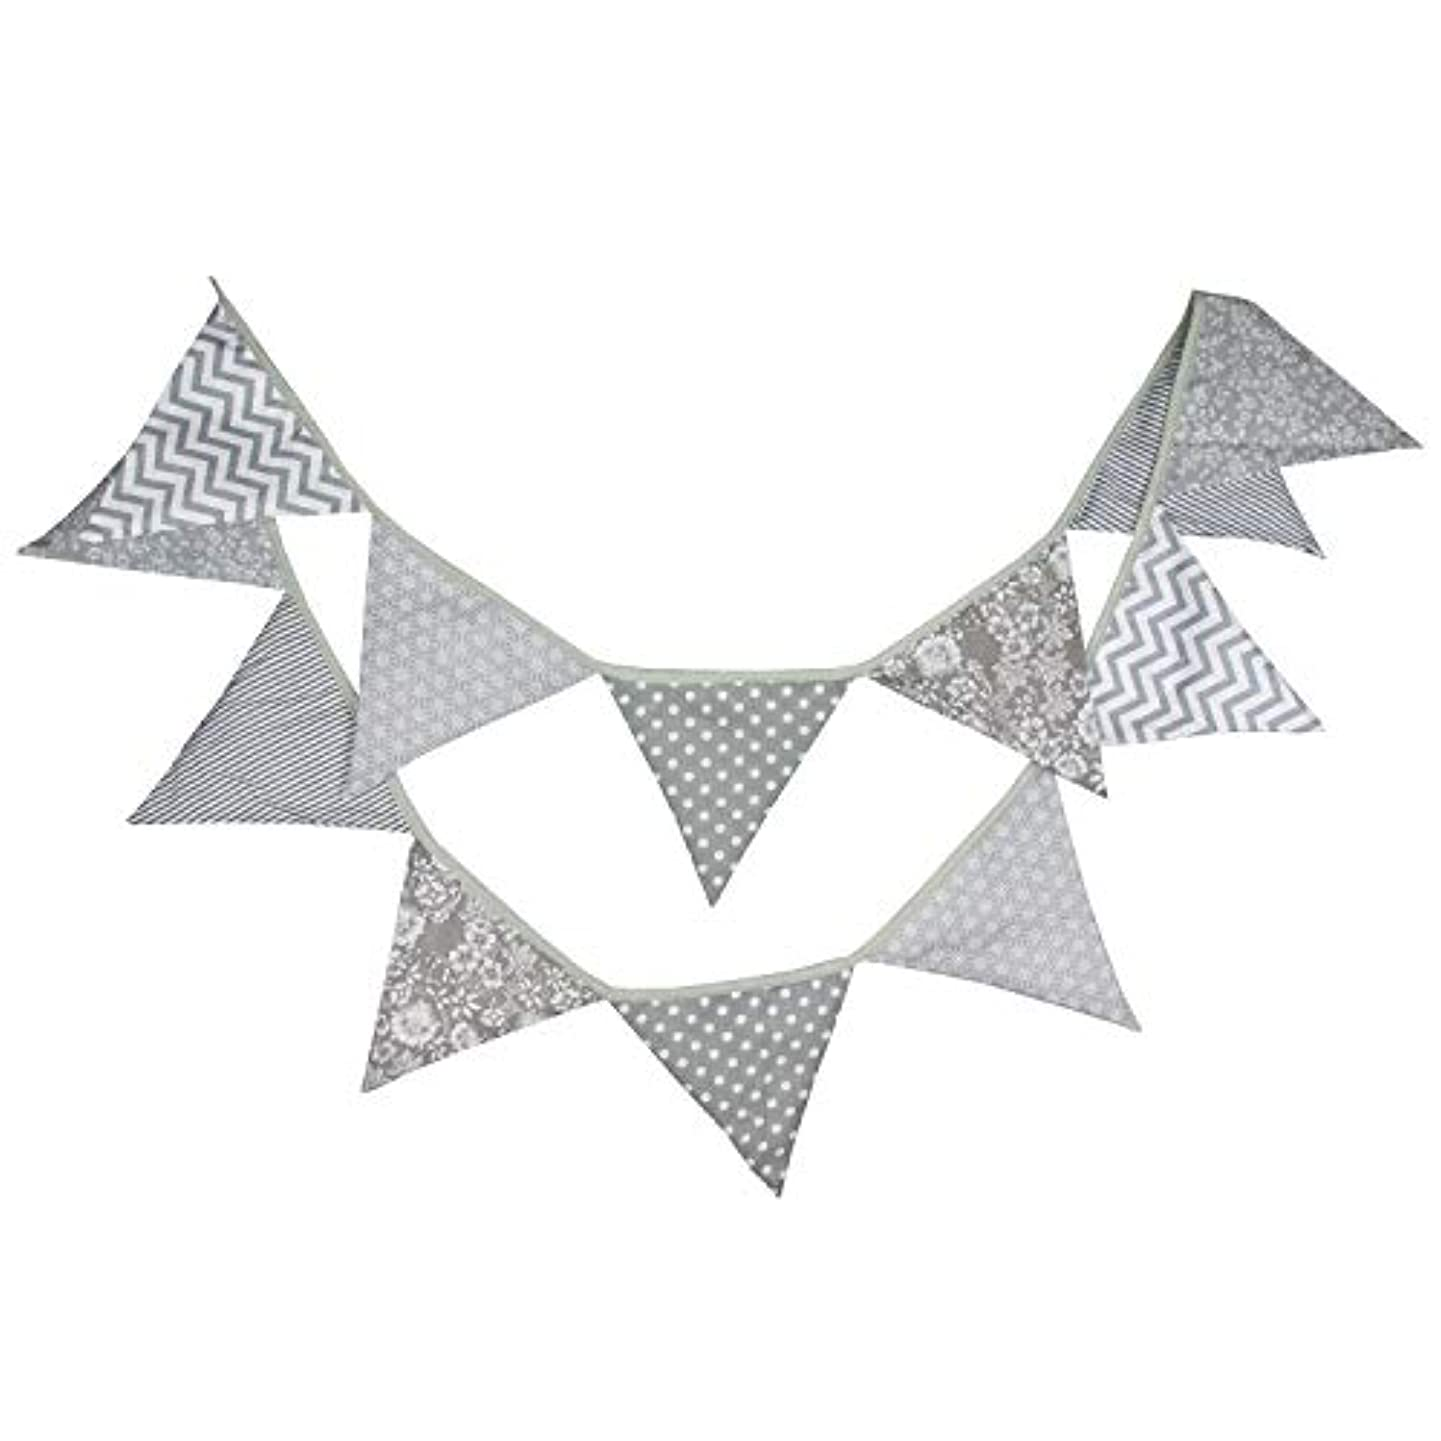 INFEI 3.2M/10.5Ft Black & Gray Halloween Fabric Triangle Flags Bunting Banner Garlands for Wedding, Birthday Party, Outdoor & Home Decoration (Grey)